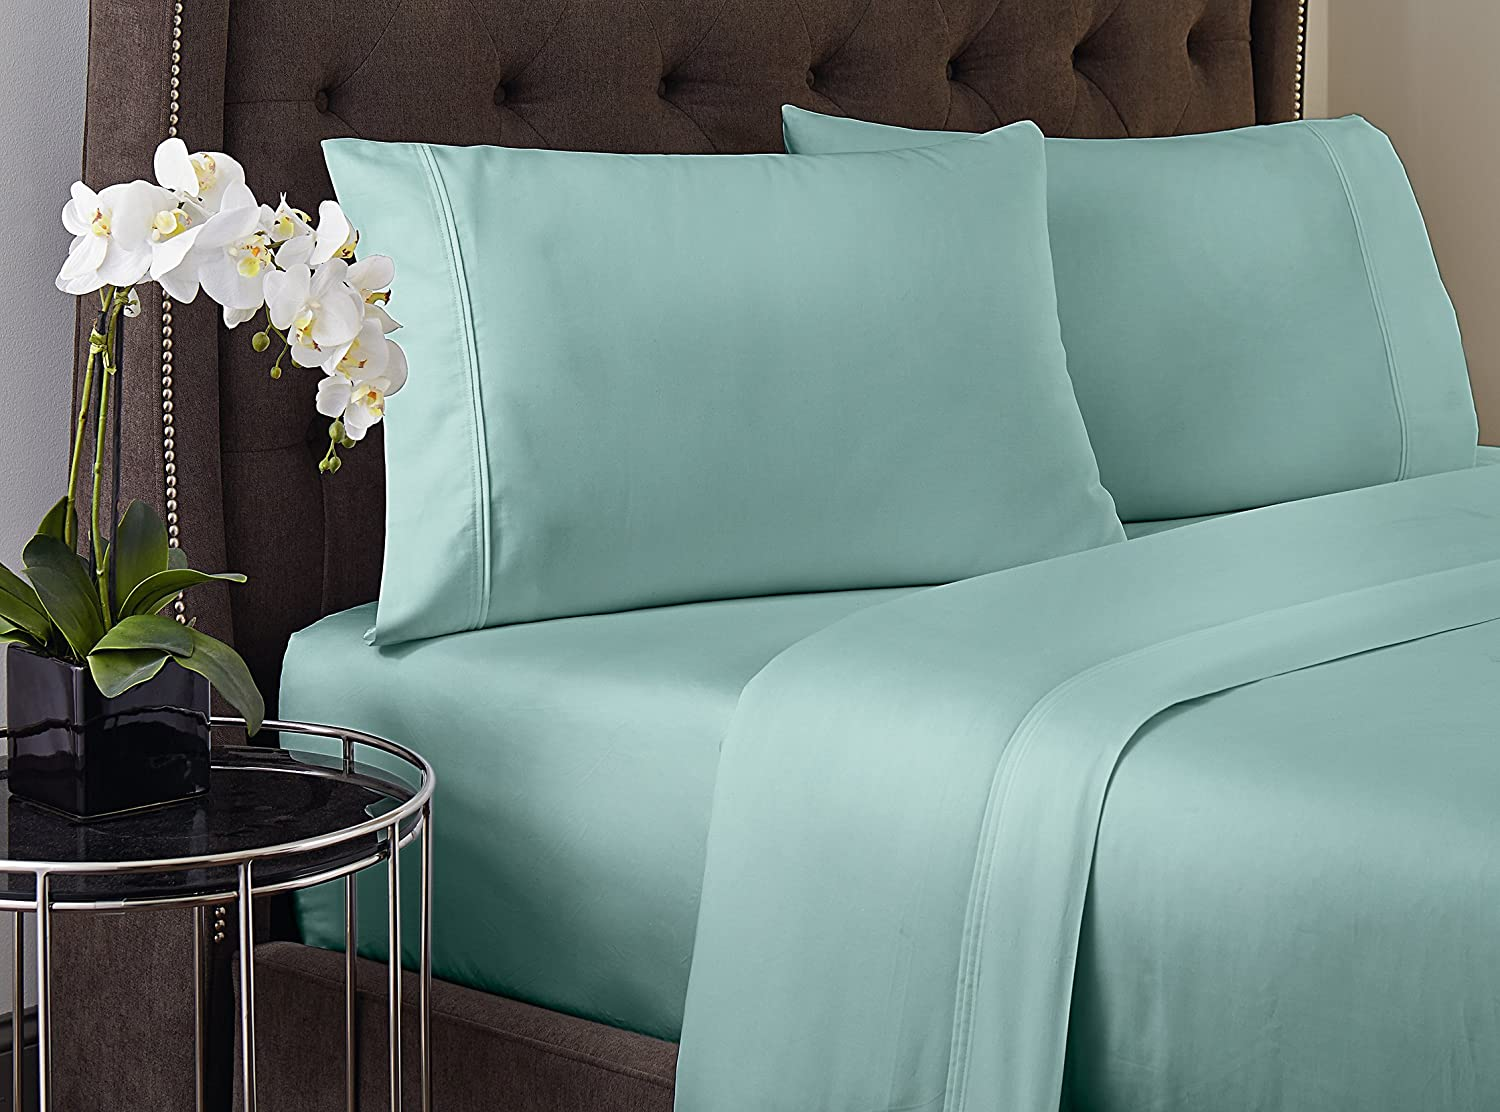 Amaze by welspun cotton sheet set bedding king navy blue - Amazon Com Crowning Touch 500 Thread Count Wrinkle Resistant Cotton Sheet Set Full Aqua Blue Home Kitchen